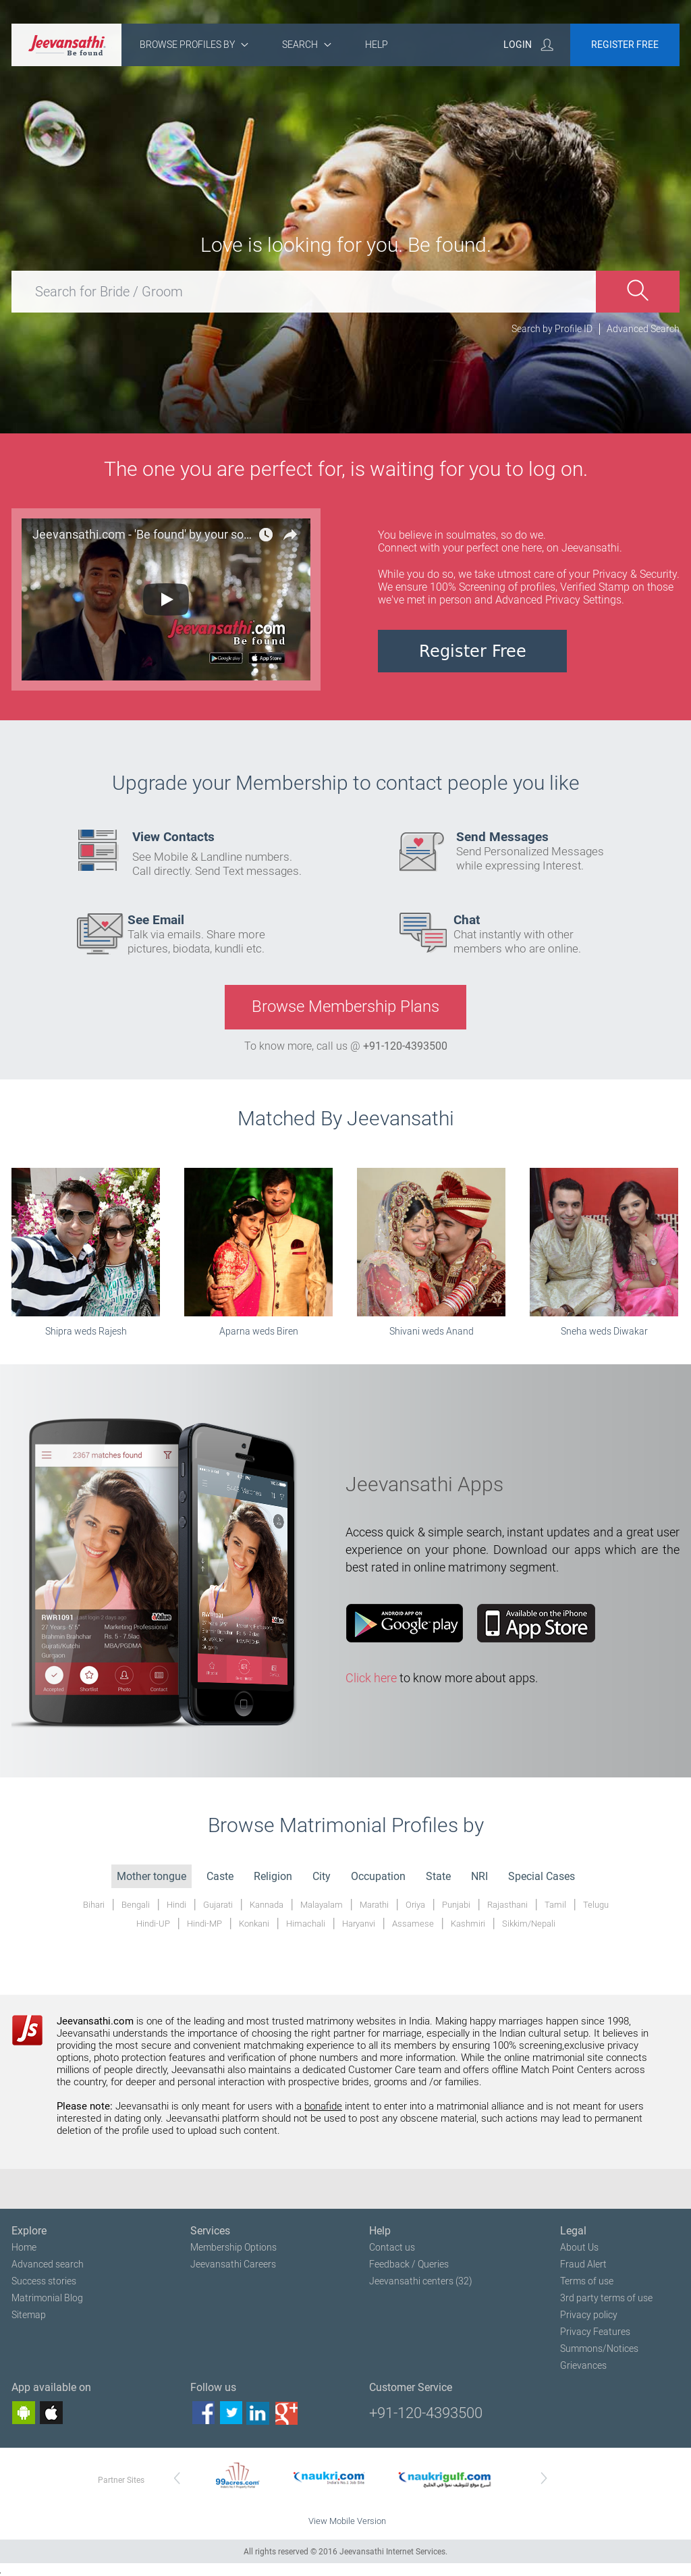 Jeevansathi Competitors, Revenue and Employees - Owler